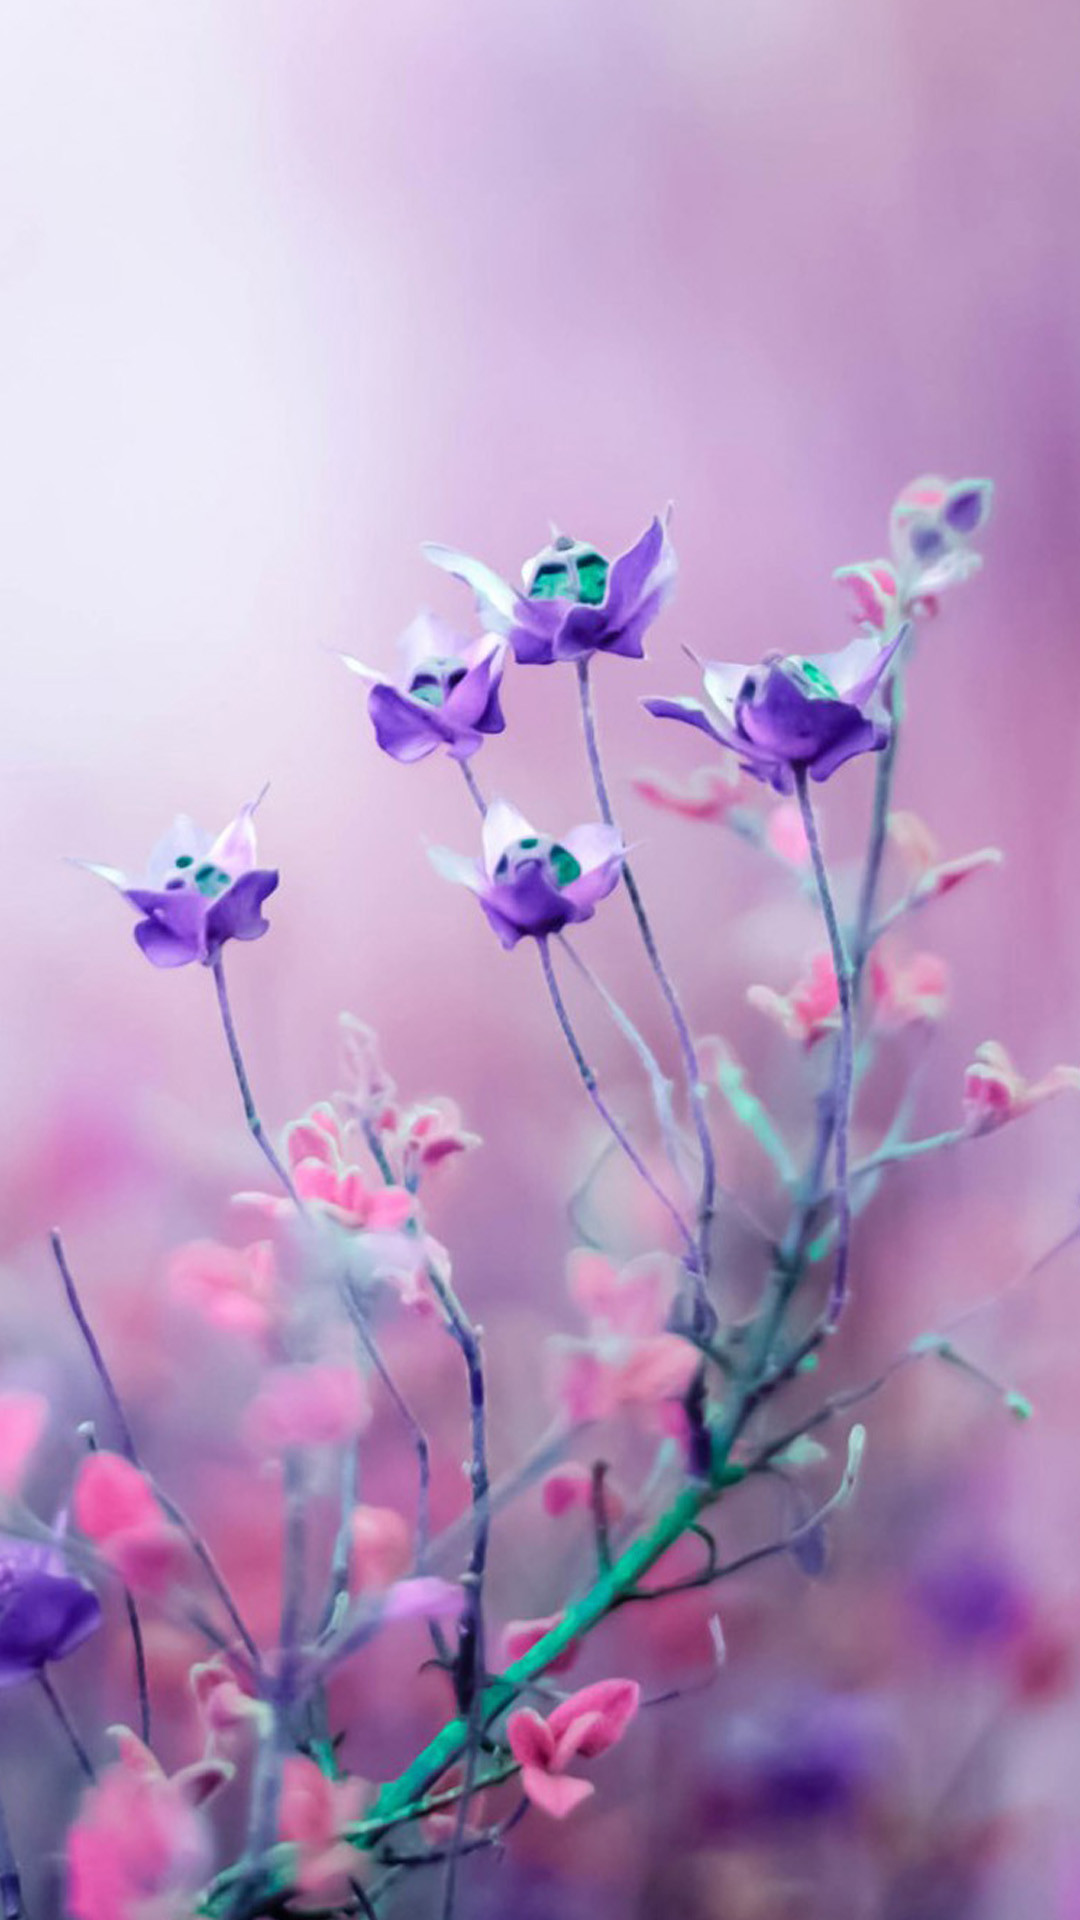 1080x1920 Download purple-and-pink-flower-iphone-7-wallpaper Wallpaper ...